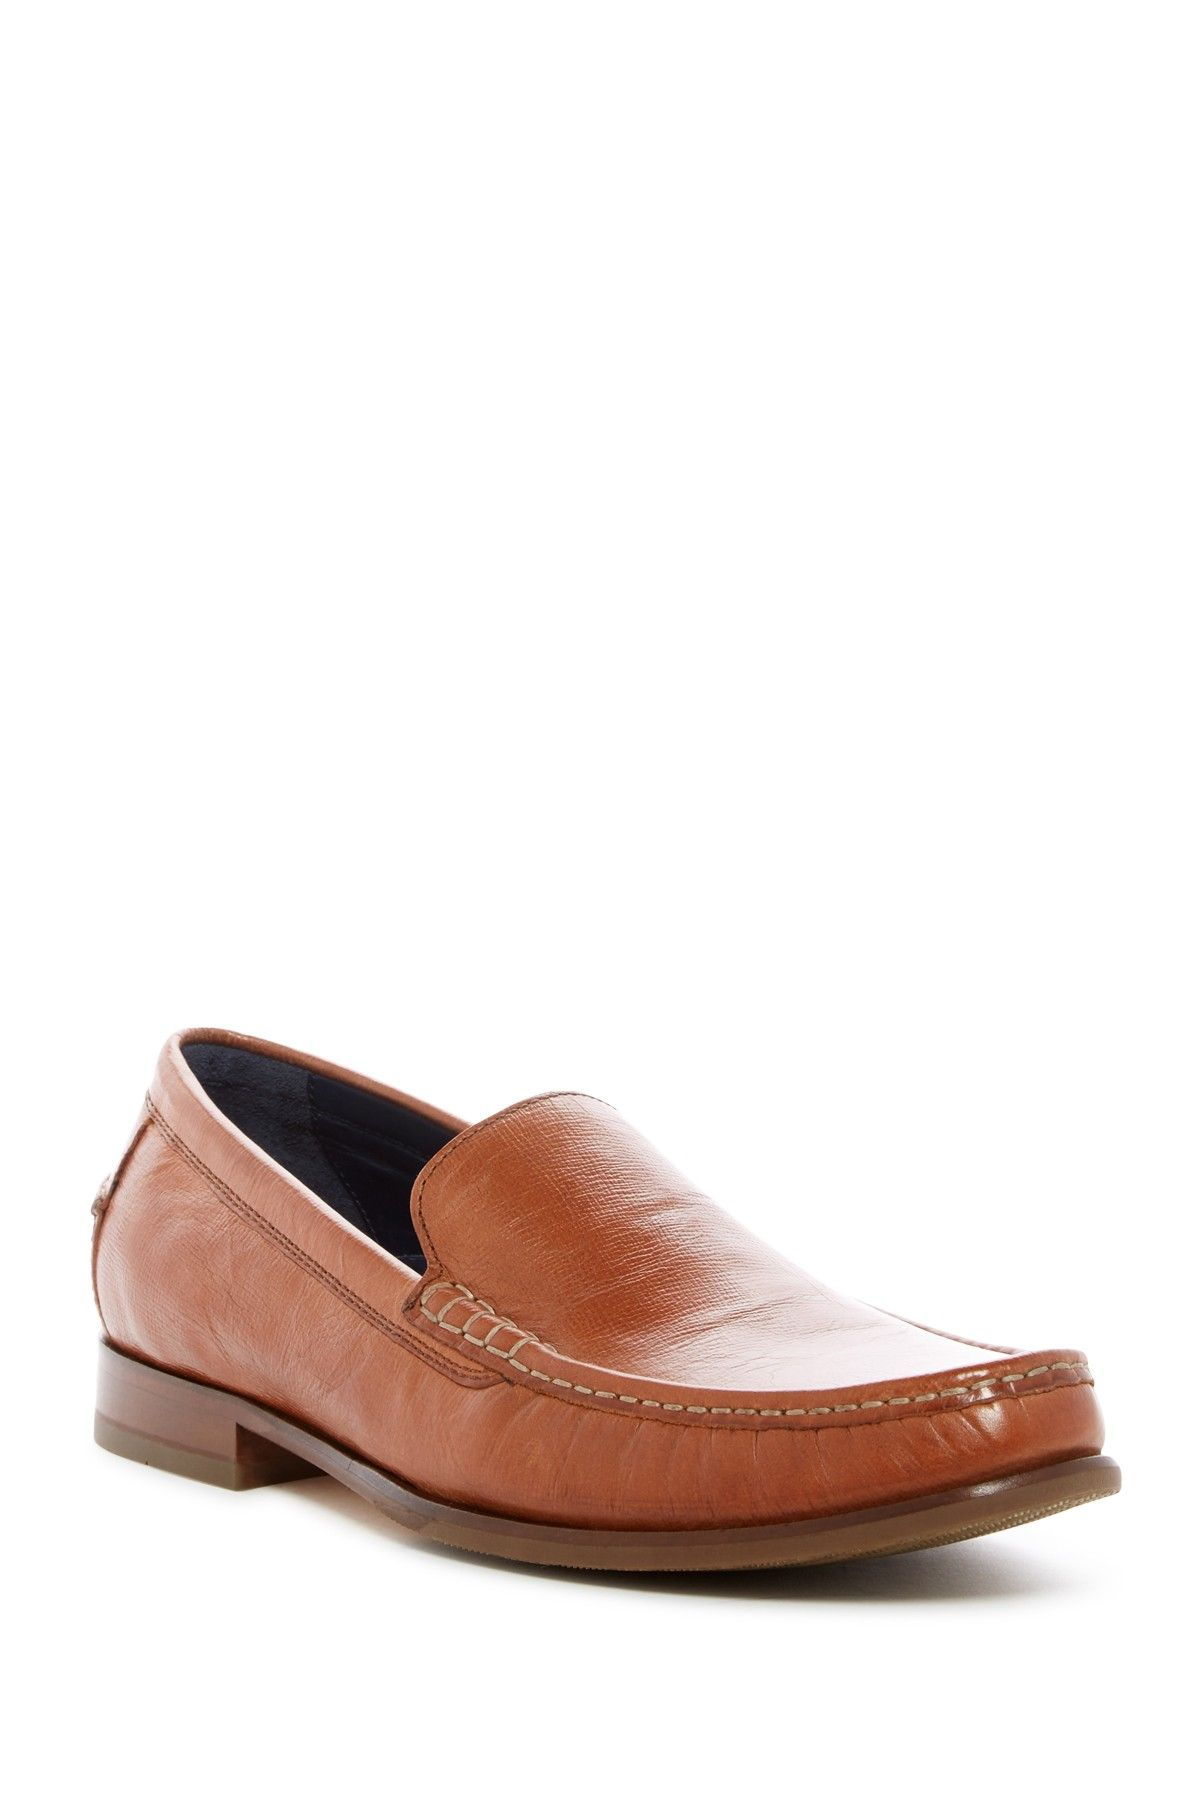 a419ed3528a Cole Haan Aiden Grand Venetian II Loafer - Wide Width Available ...